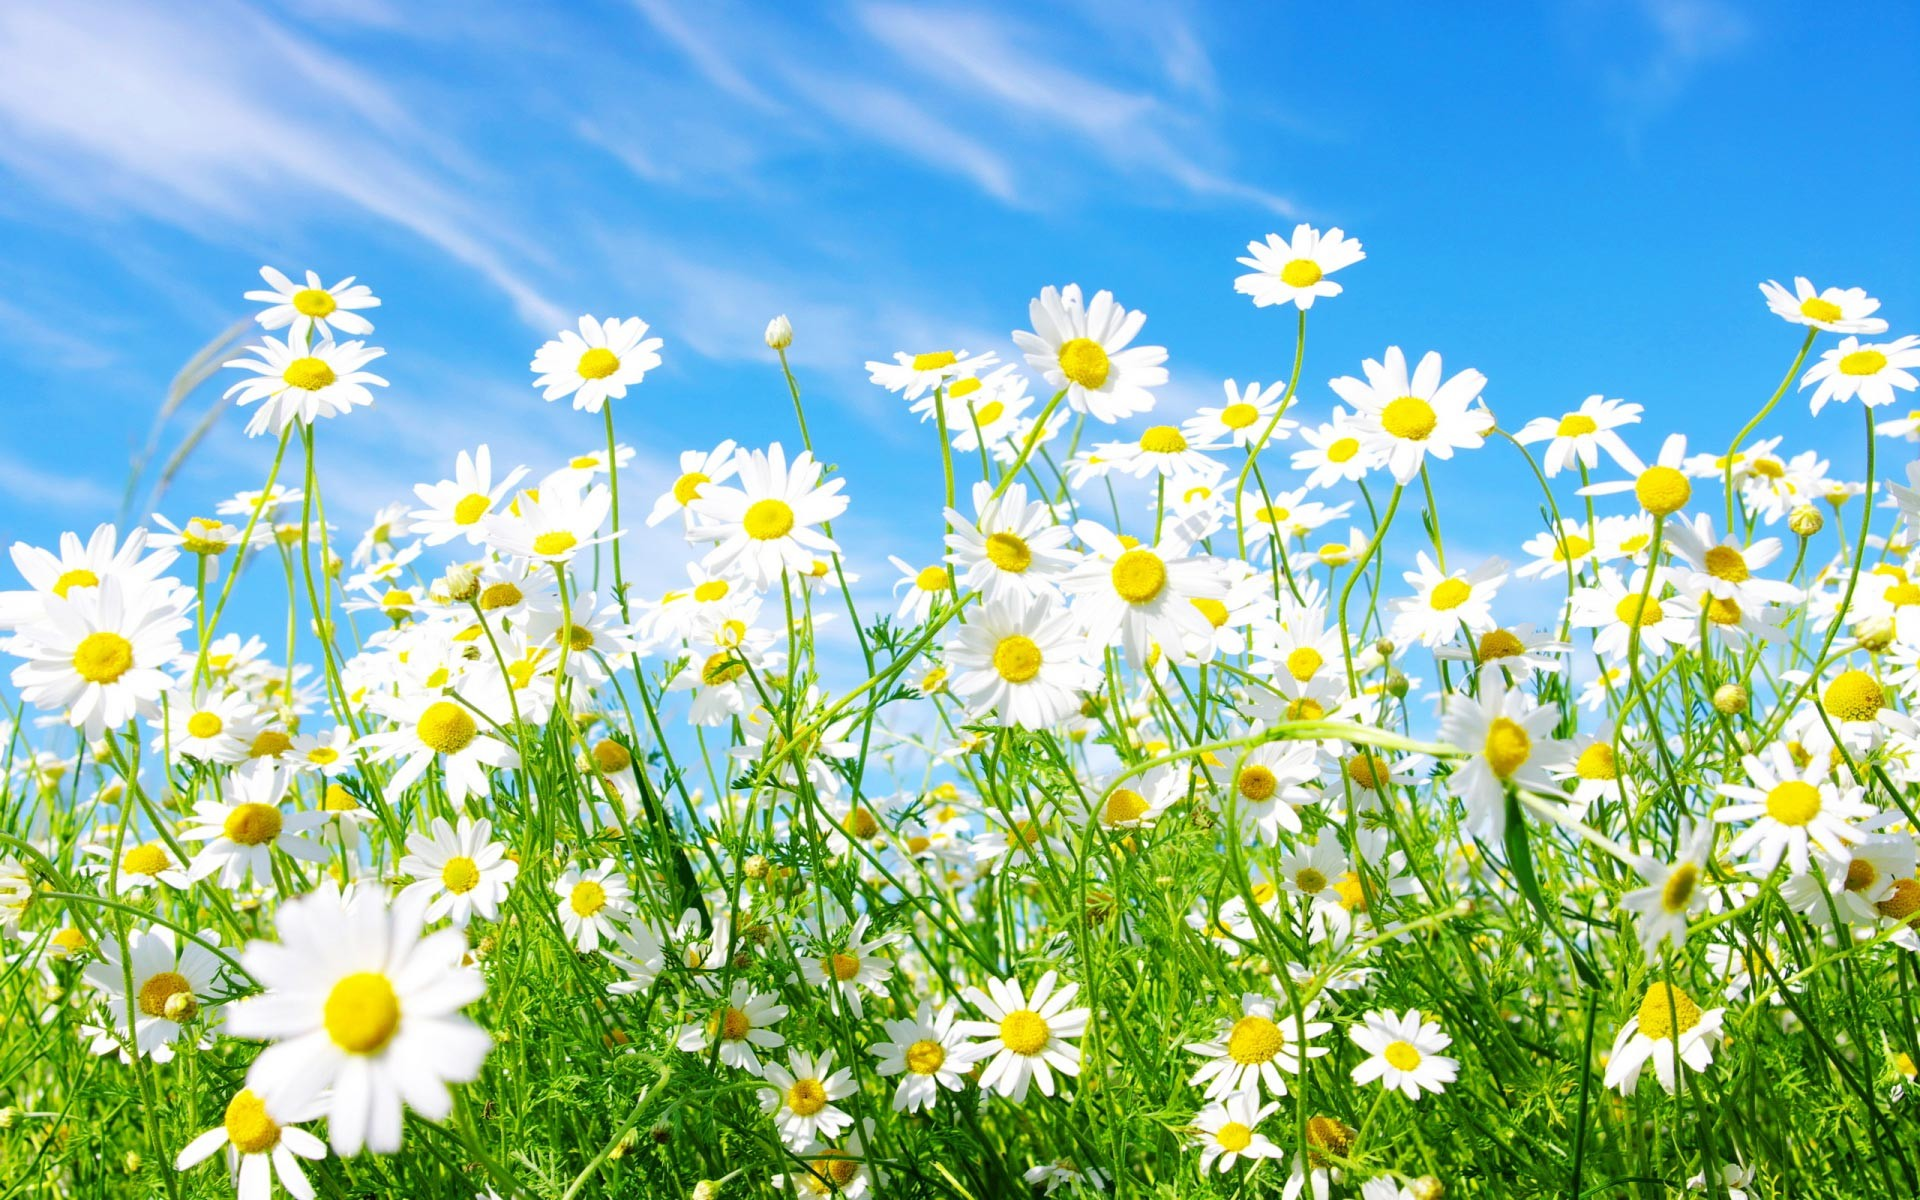 Related Wallpapers from Springtime Wallpaper. Colors White Daisy Wallpaper